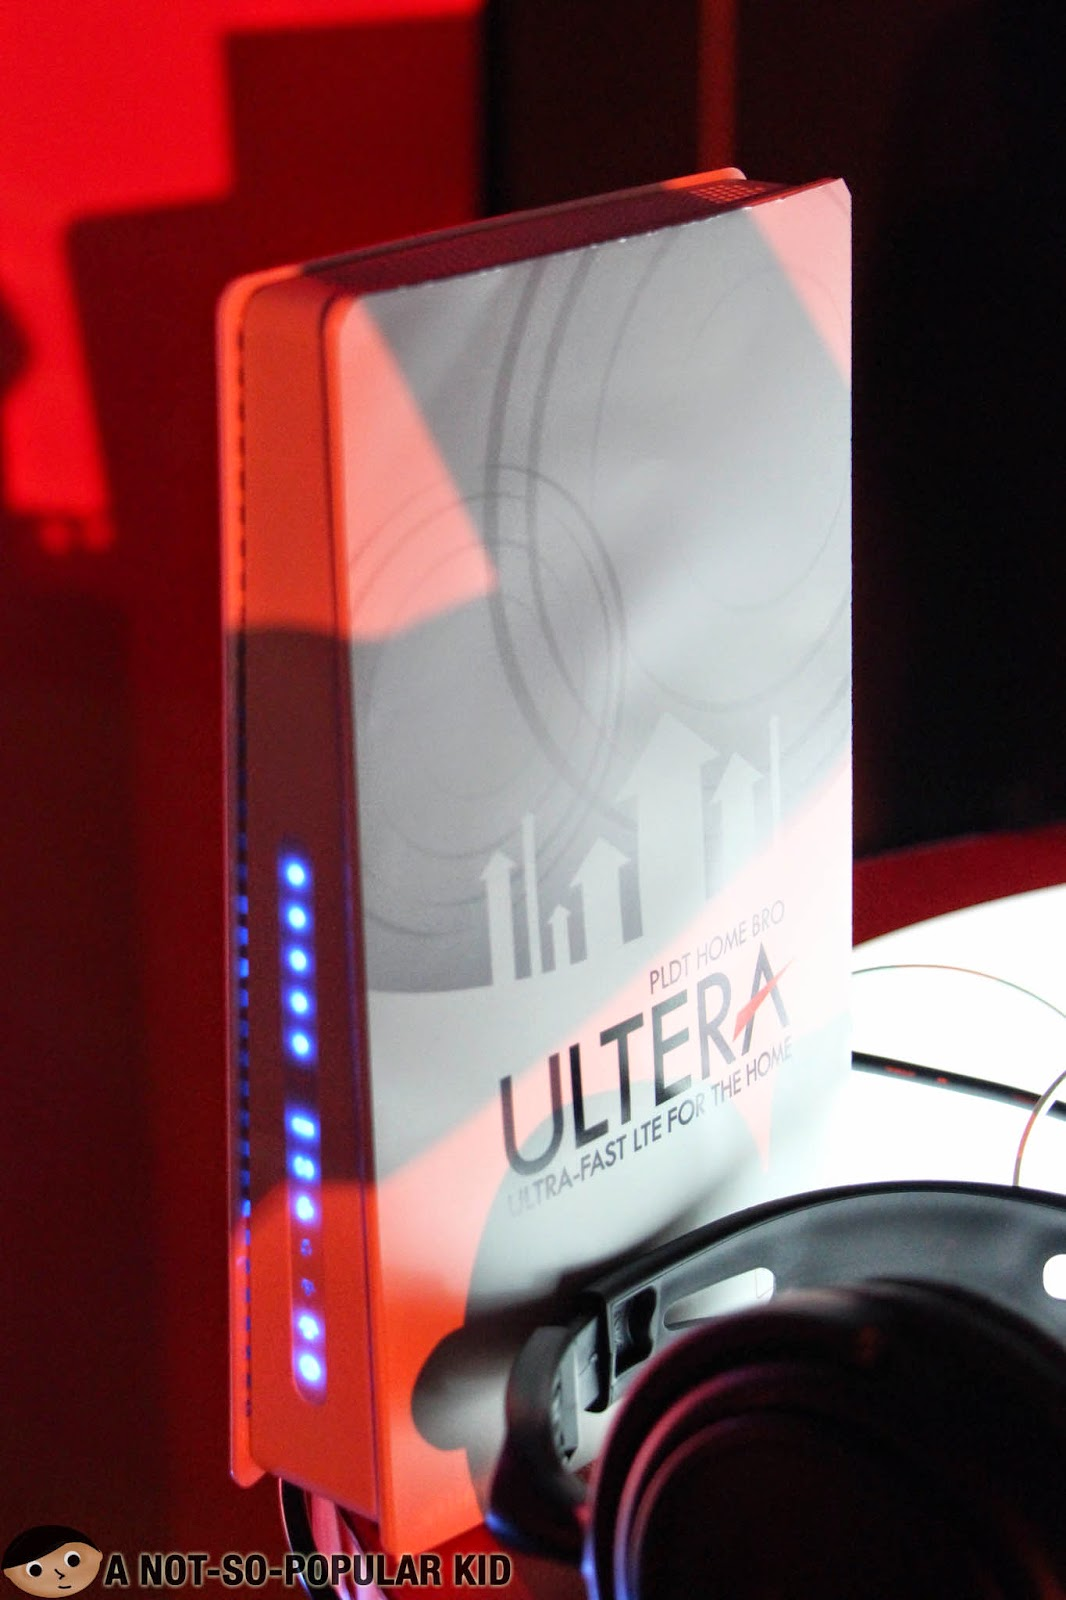 PLDT Ultera - LTE for Home